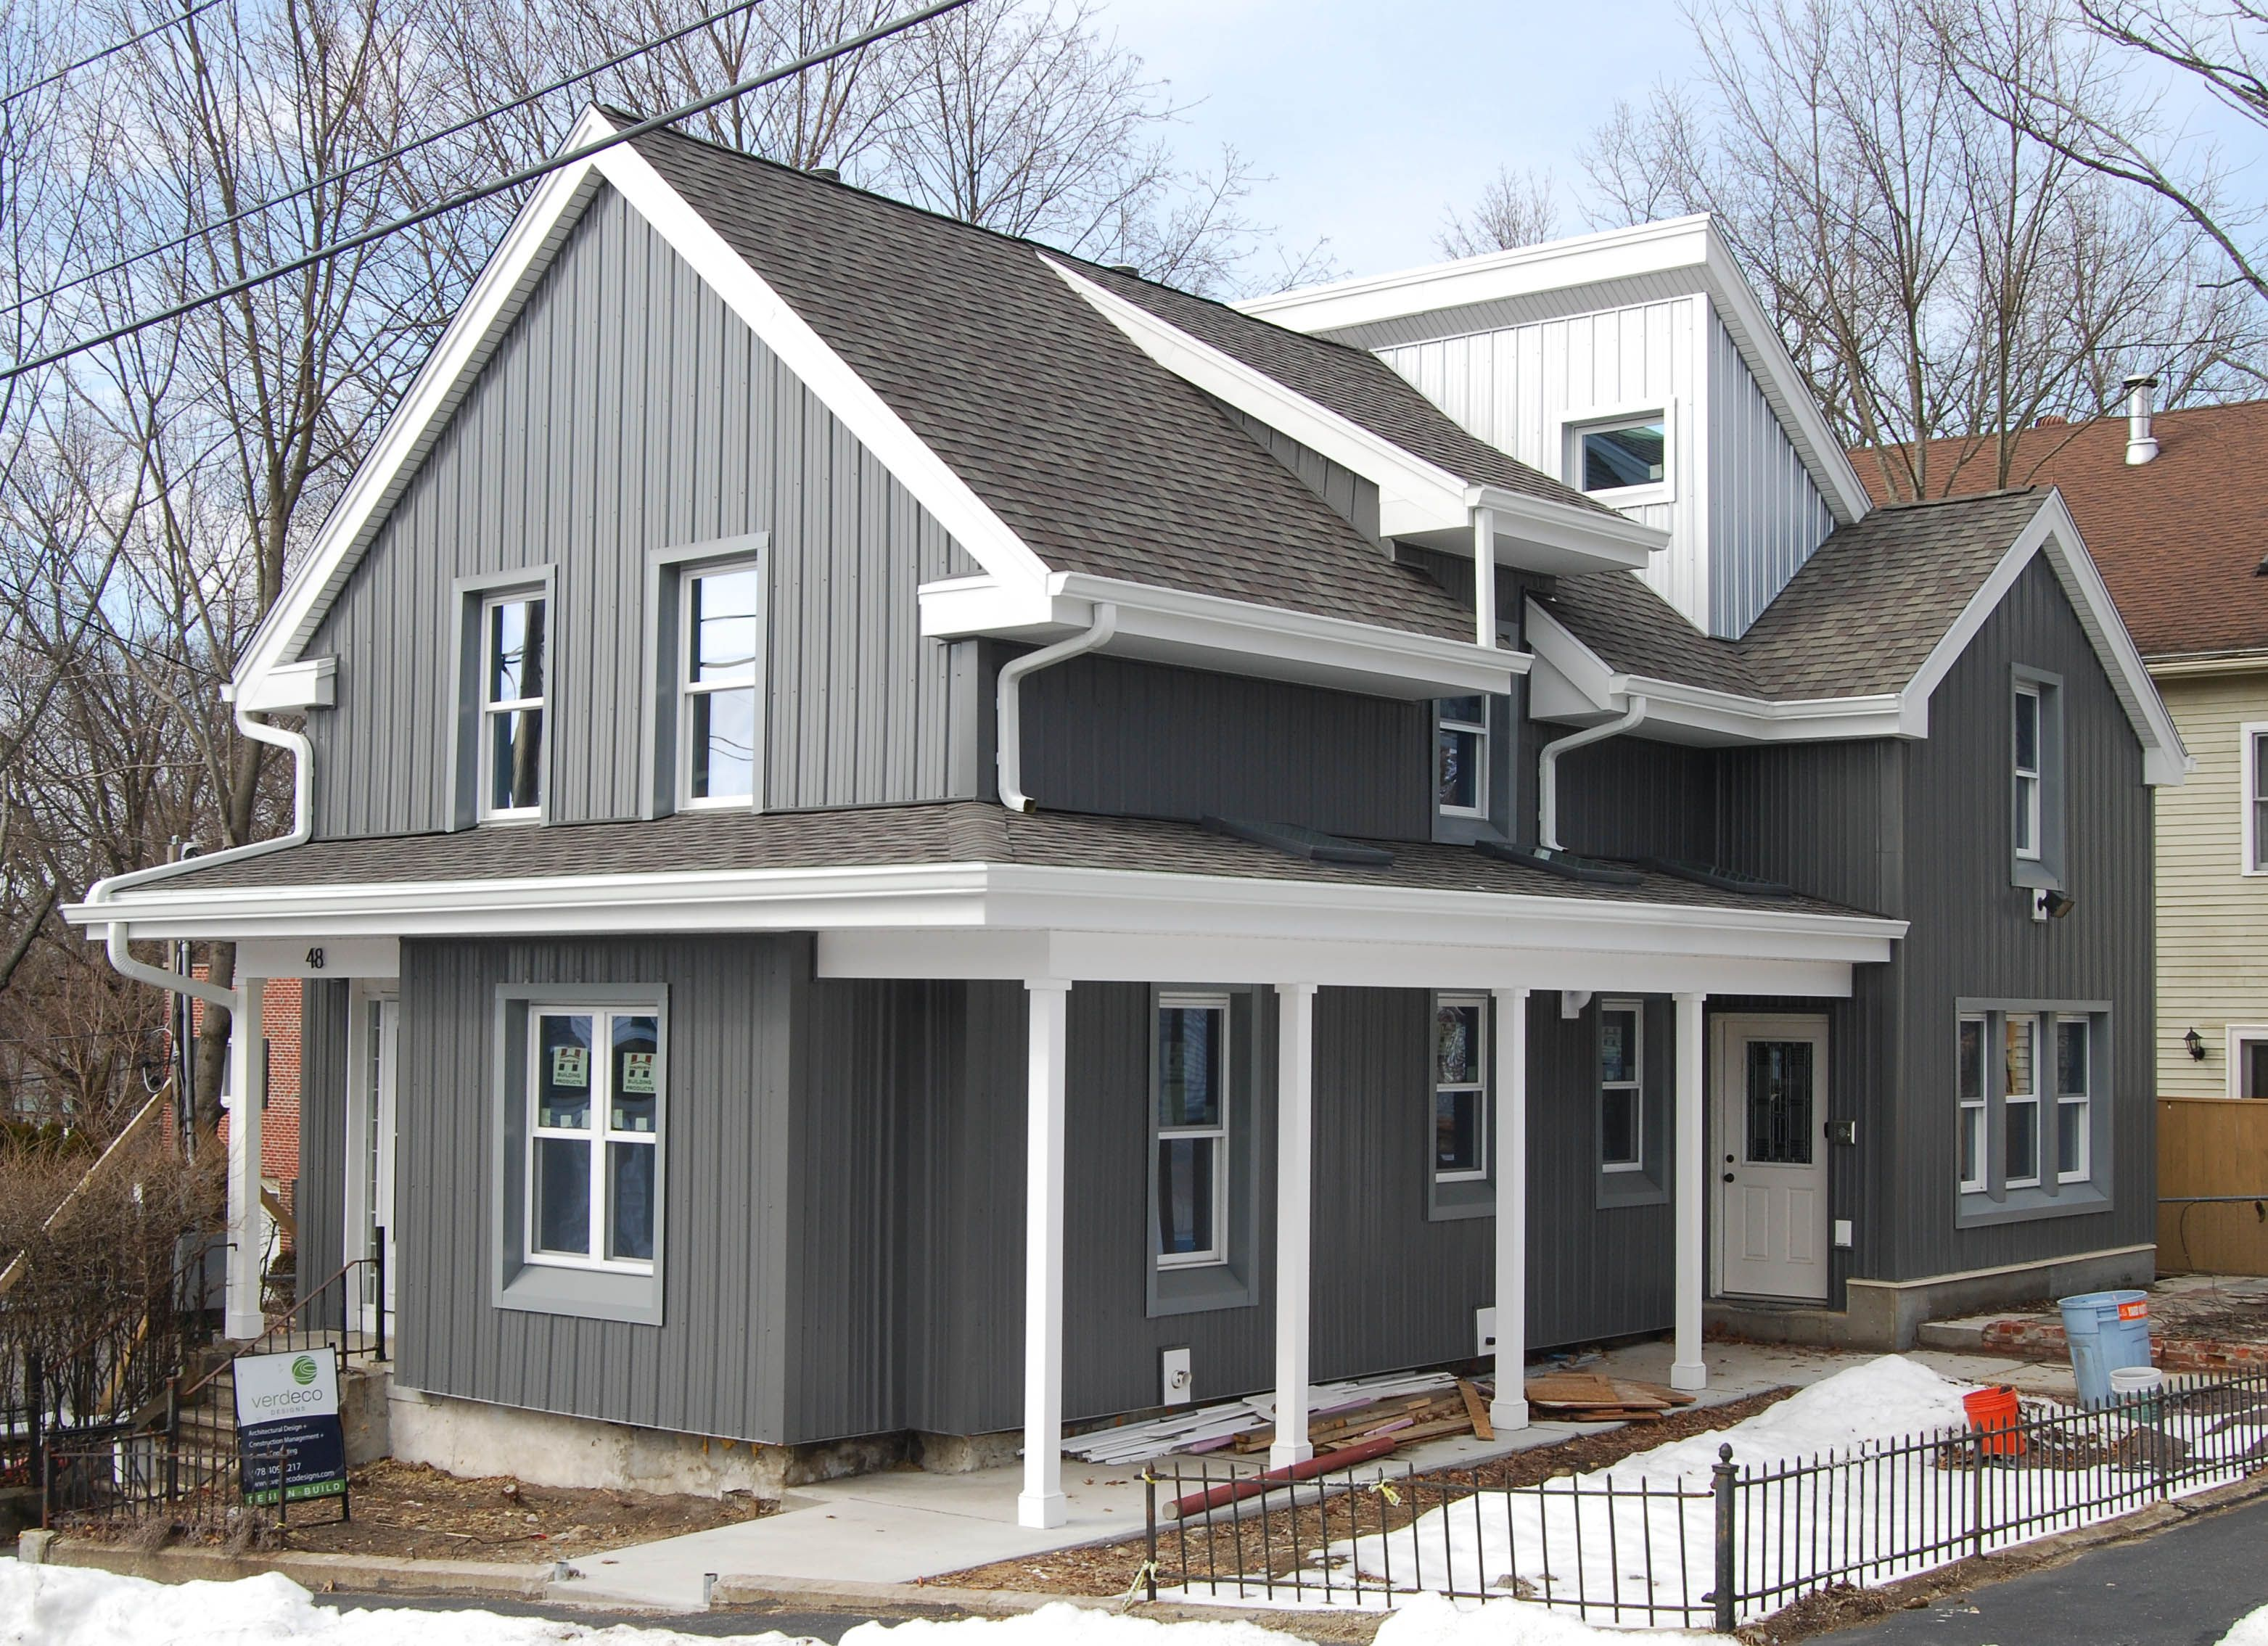 Steel Siding Houses with Metal